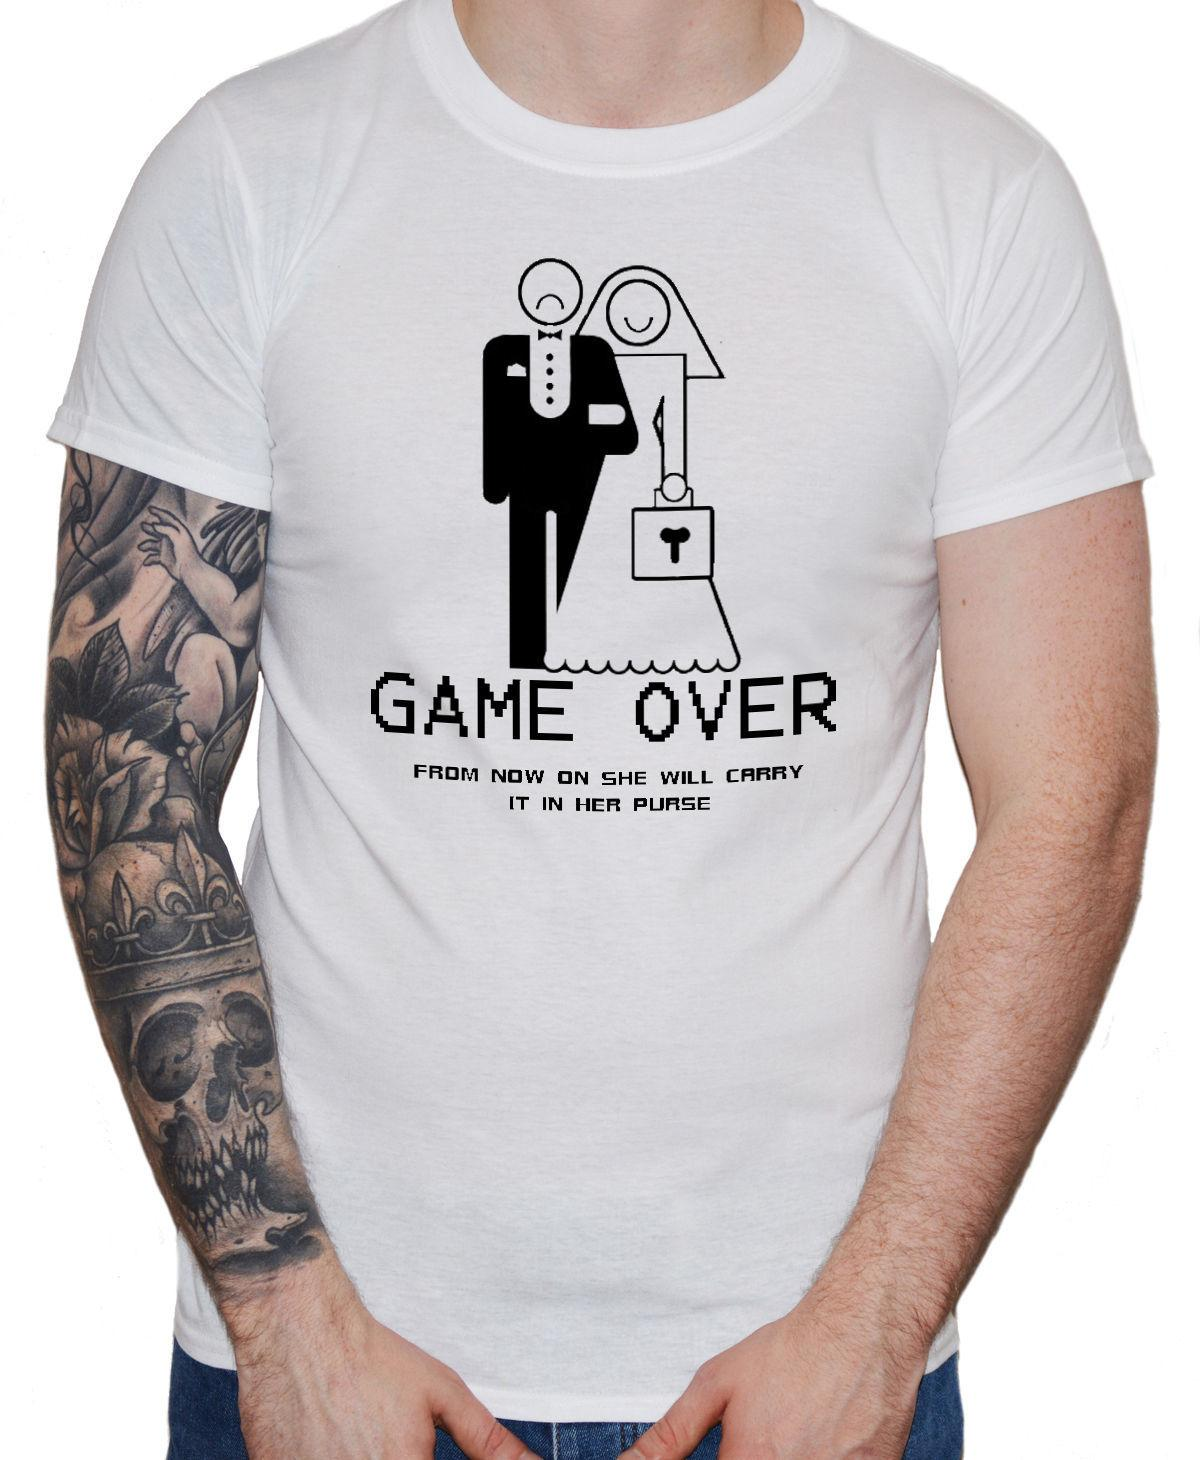 Funny Wedding T Shirt Game Over Guys Mens Groom Stag Party Marriage